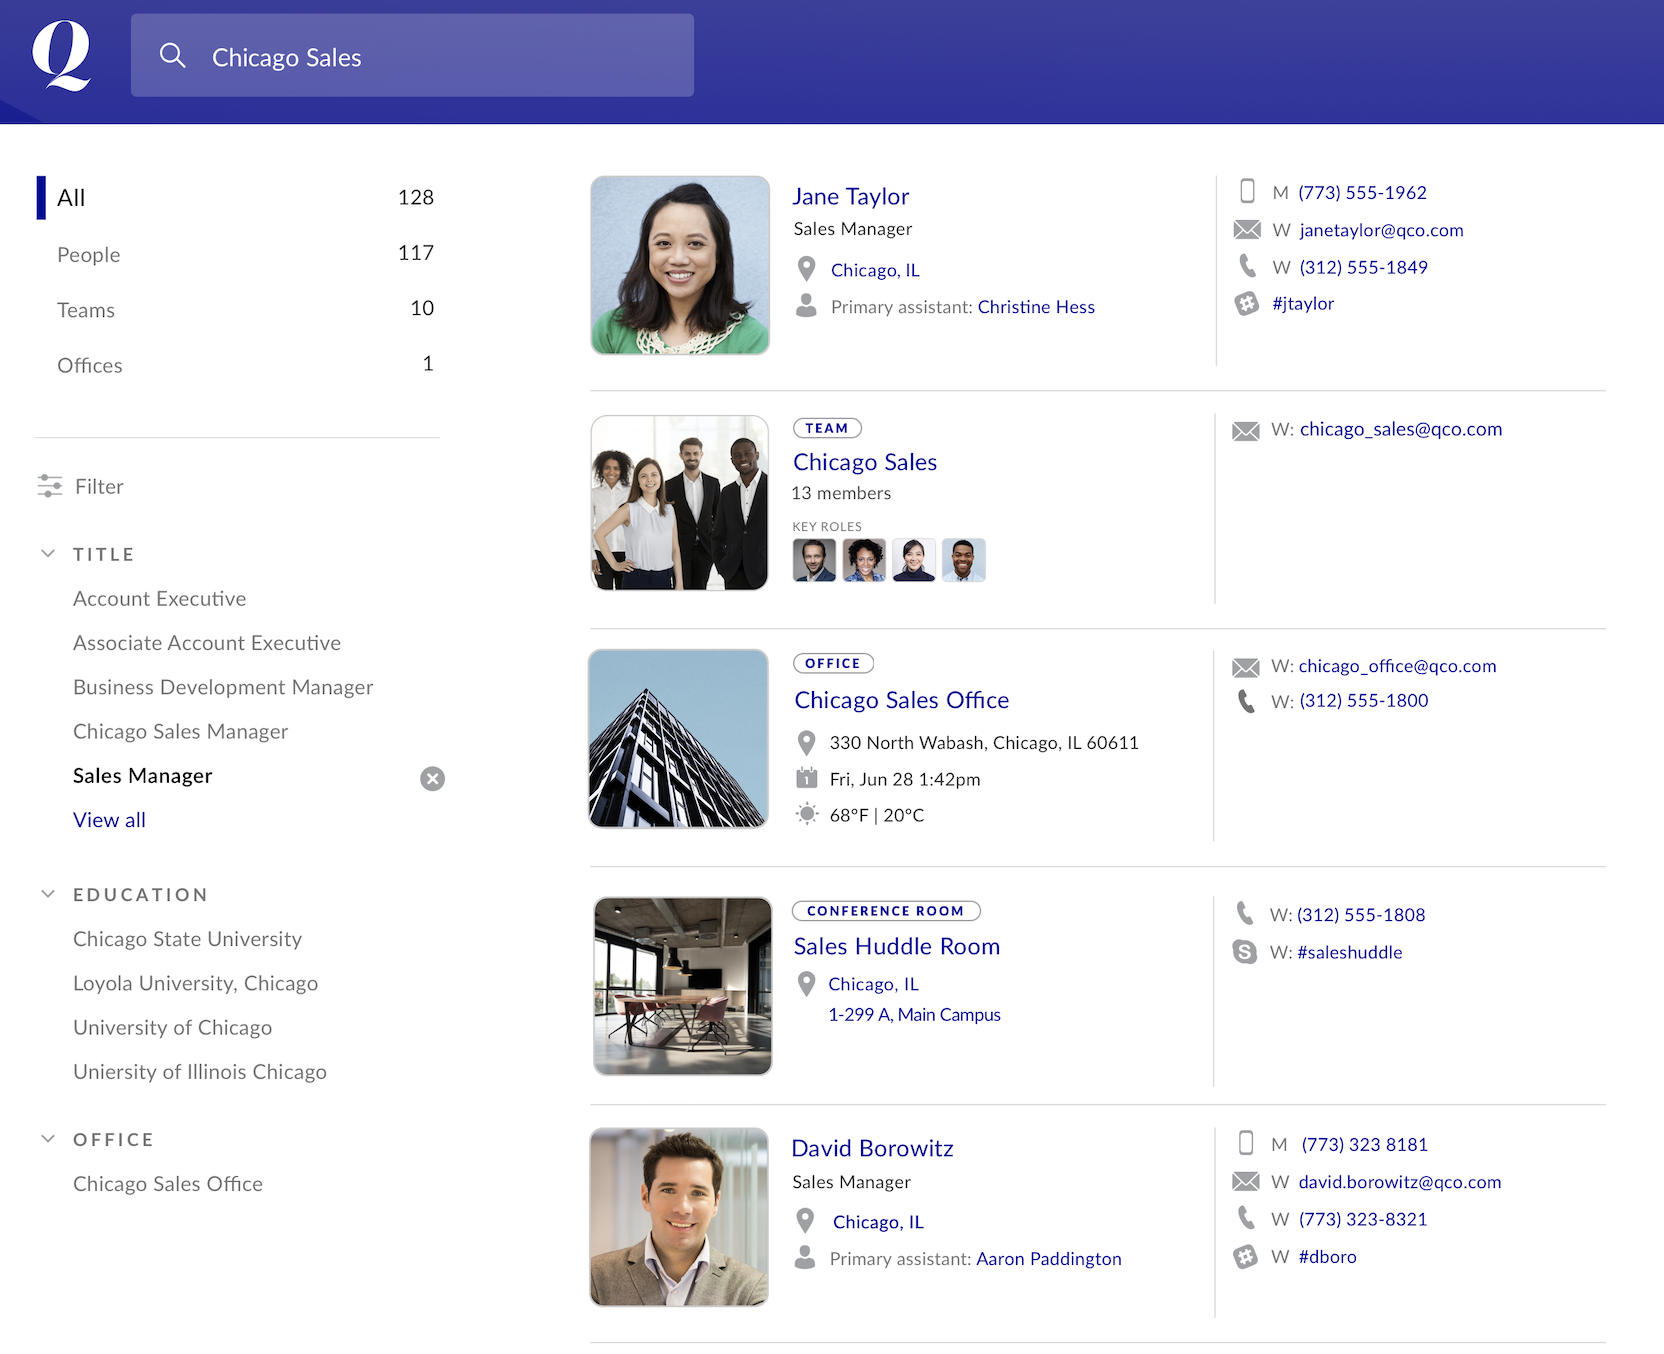 Reimagining the Company Directory